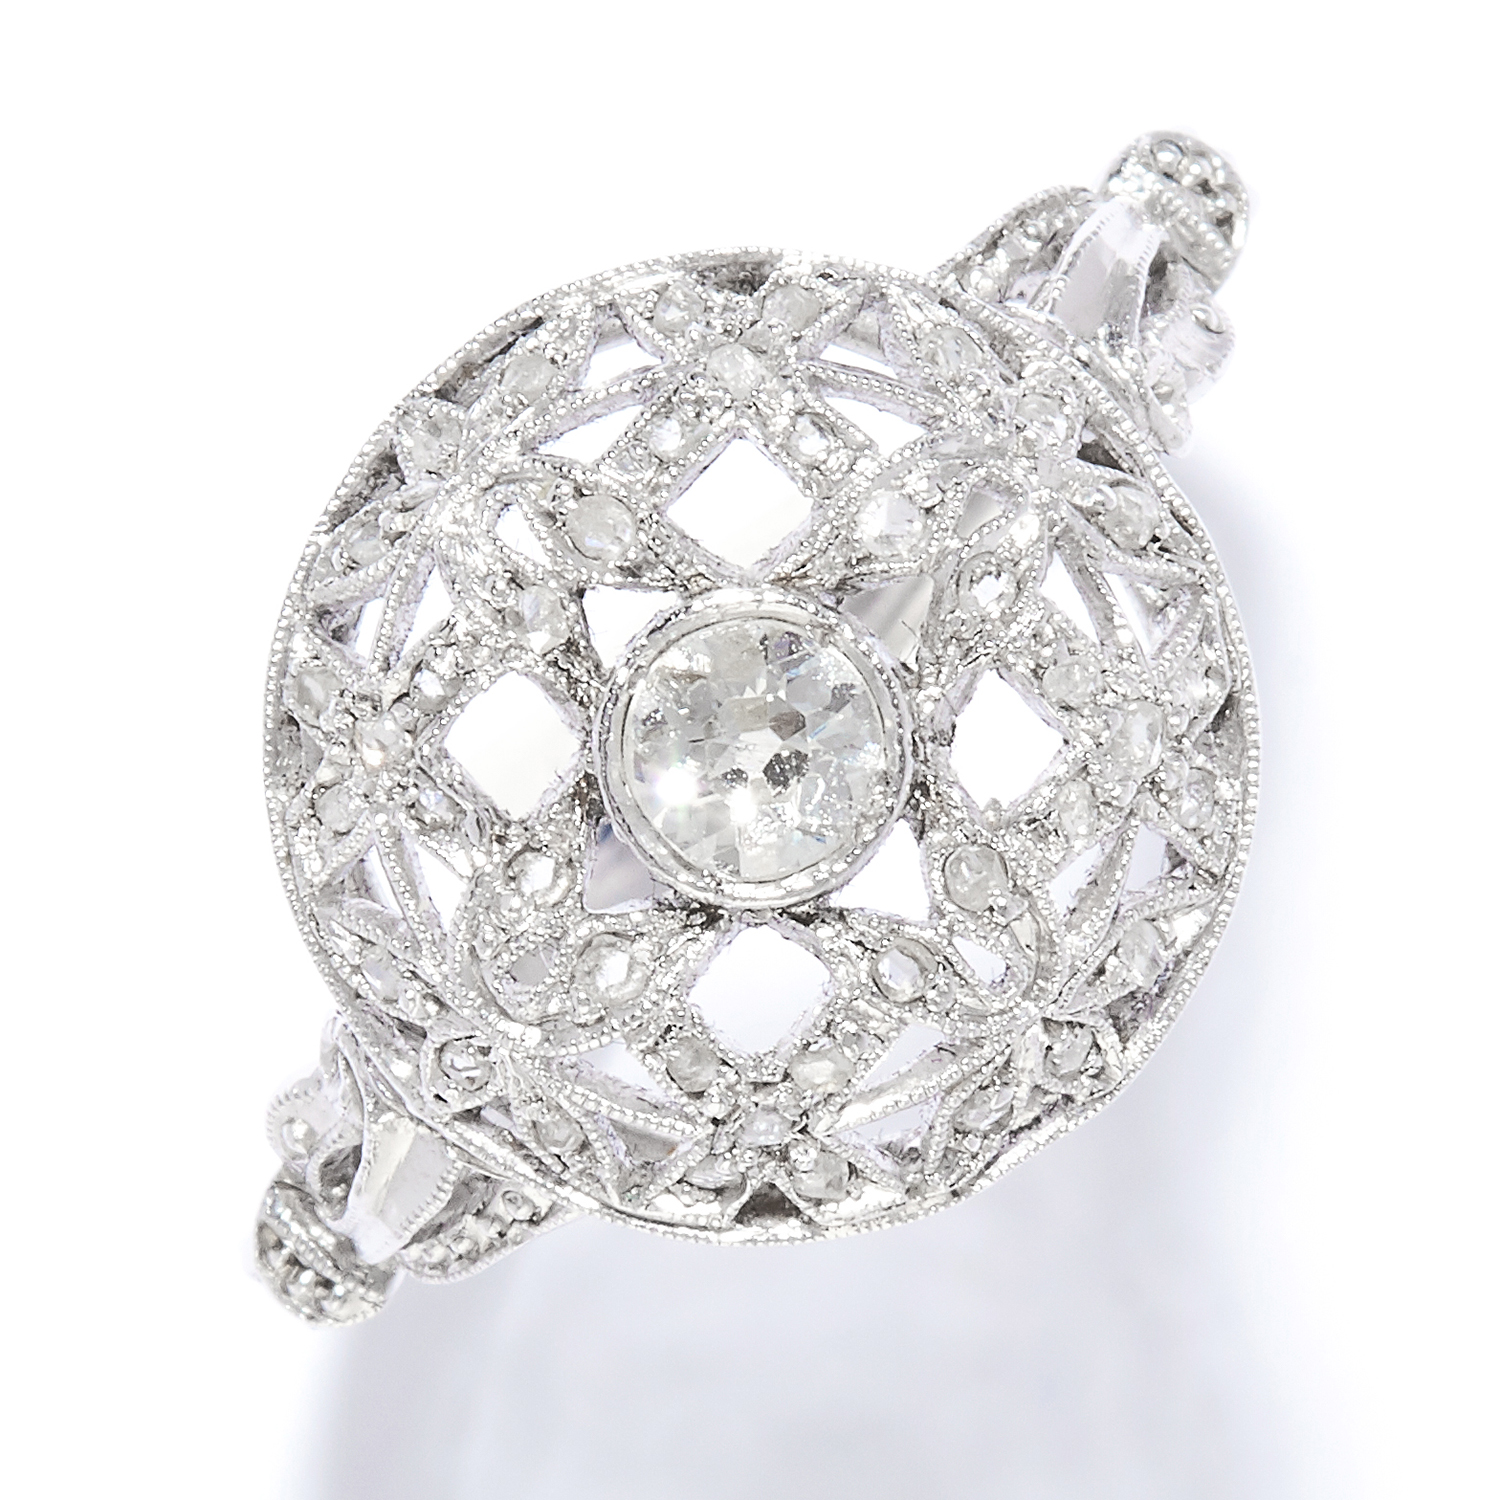 ANTIQUE DIAMOND DRESS RING in 18ct white gold, set with an old and rose cut diamonds in open